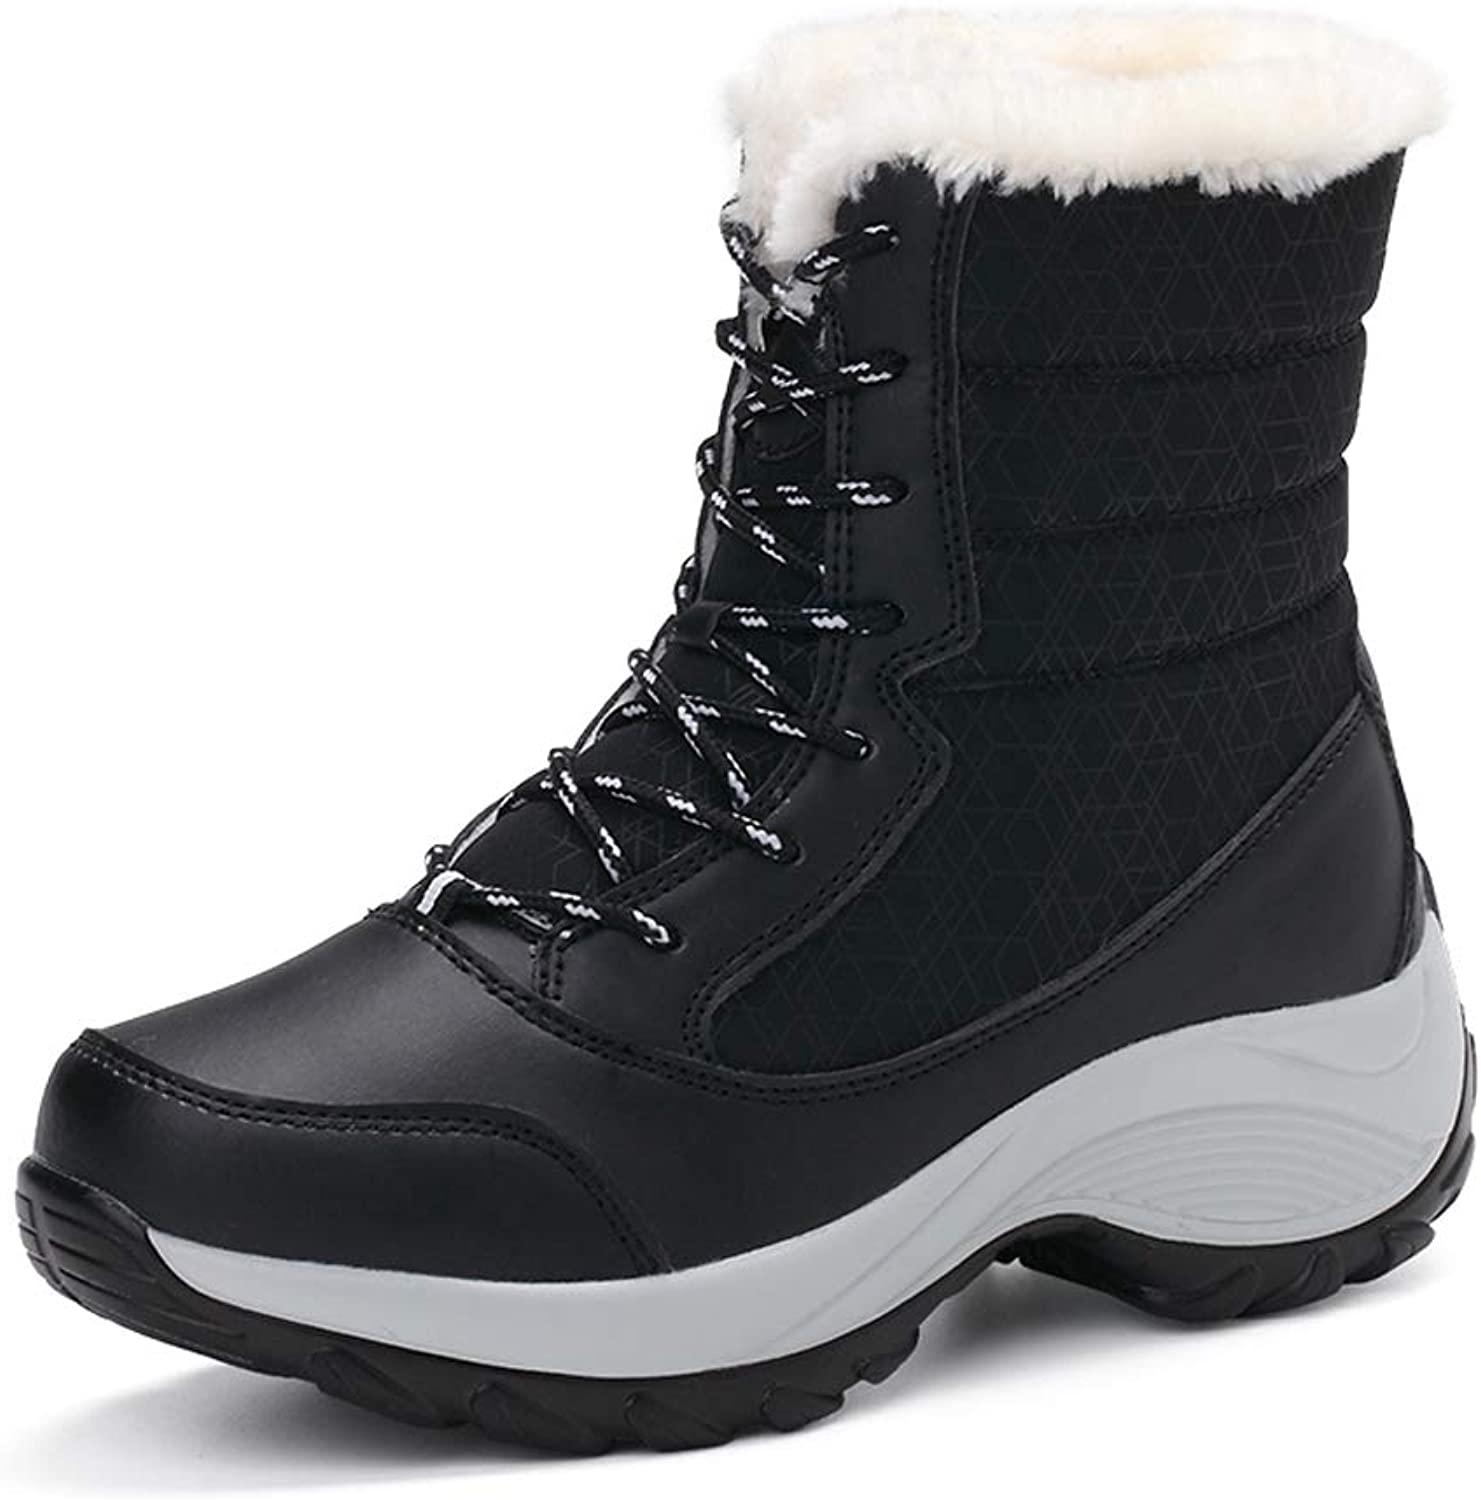 GOMNEAR Women Snow Boots Winter Ankle Warm Ladies Comfortable Fur Lined Casual Windproof Non-Slip Walking shoes